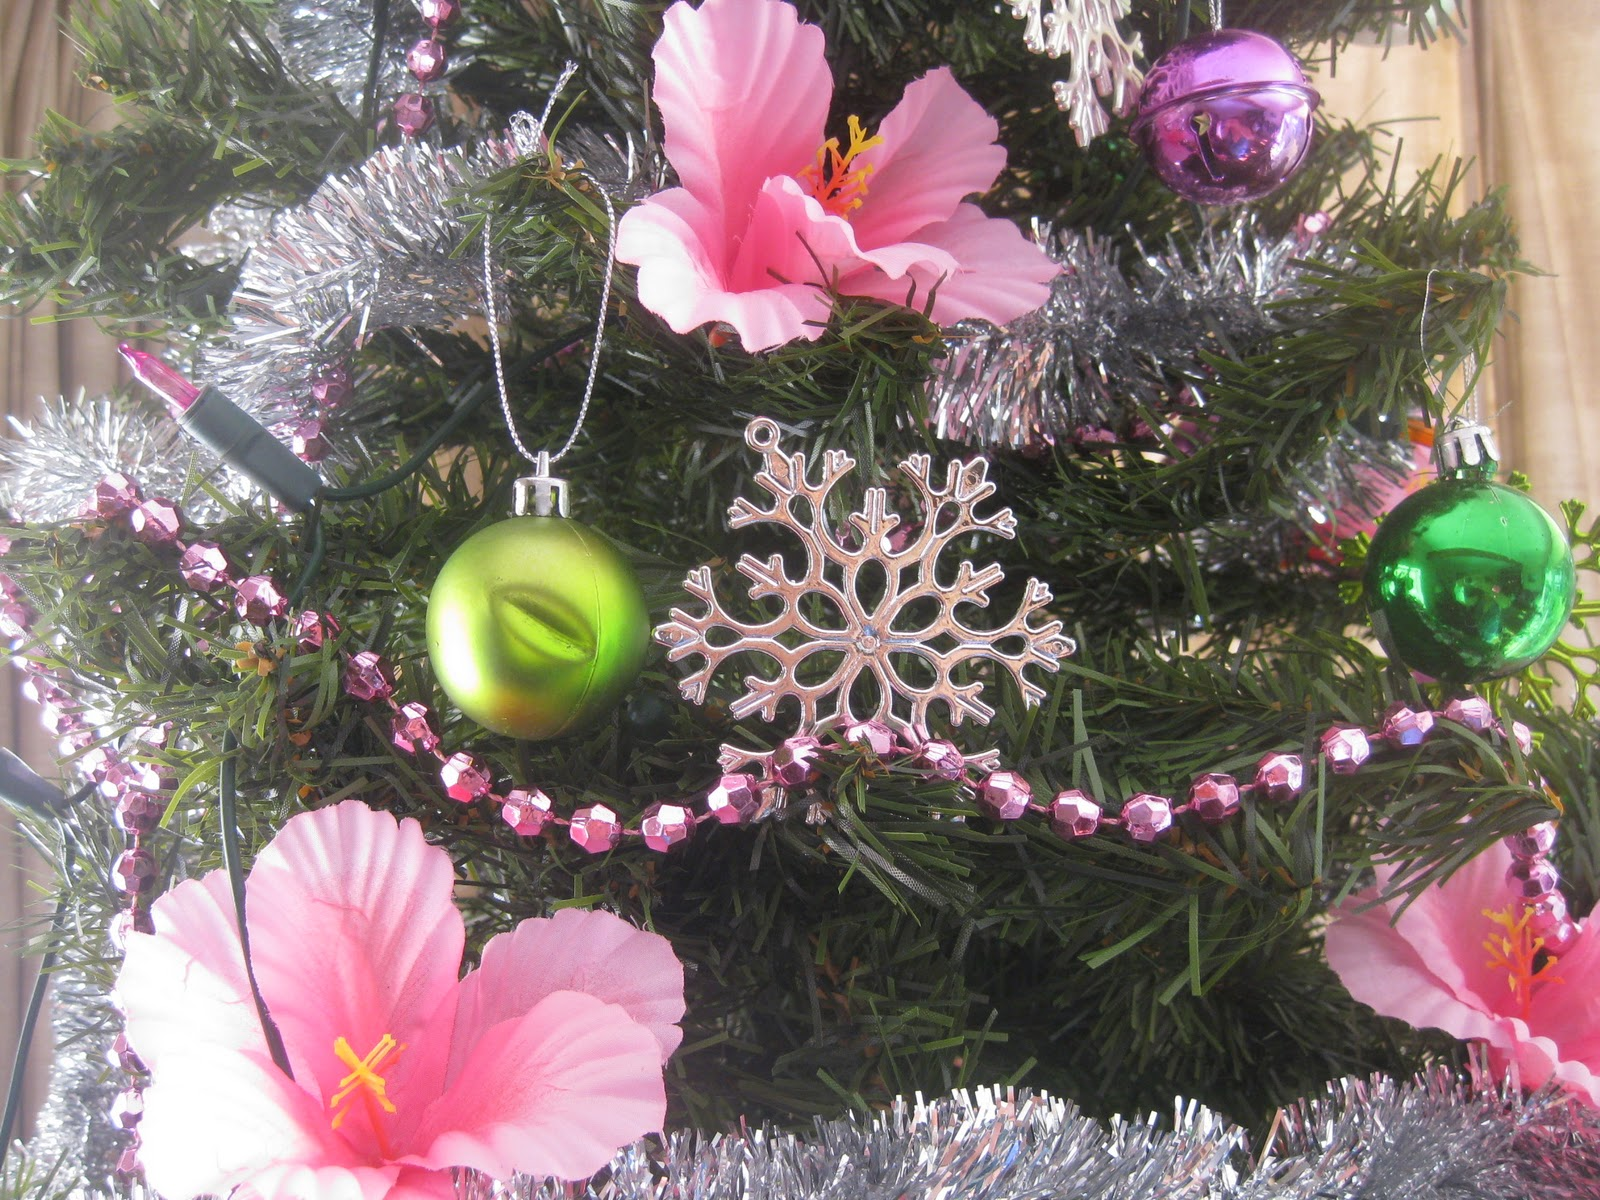 Making your own Christmas decorations - with a tropical theme